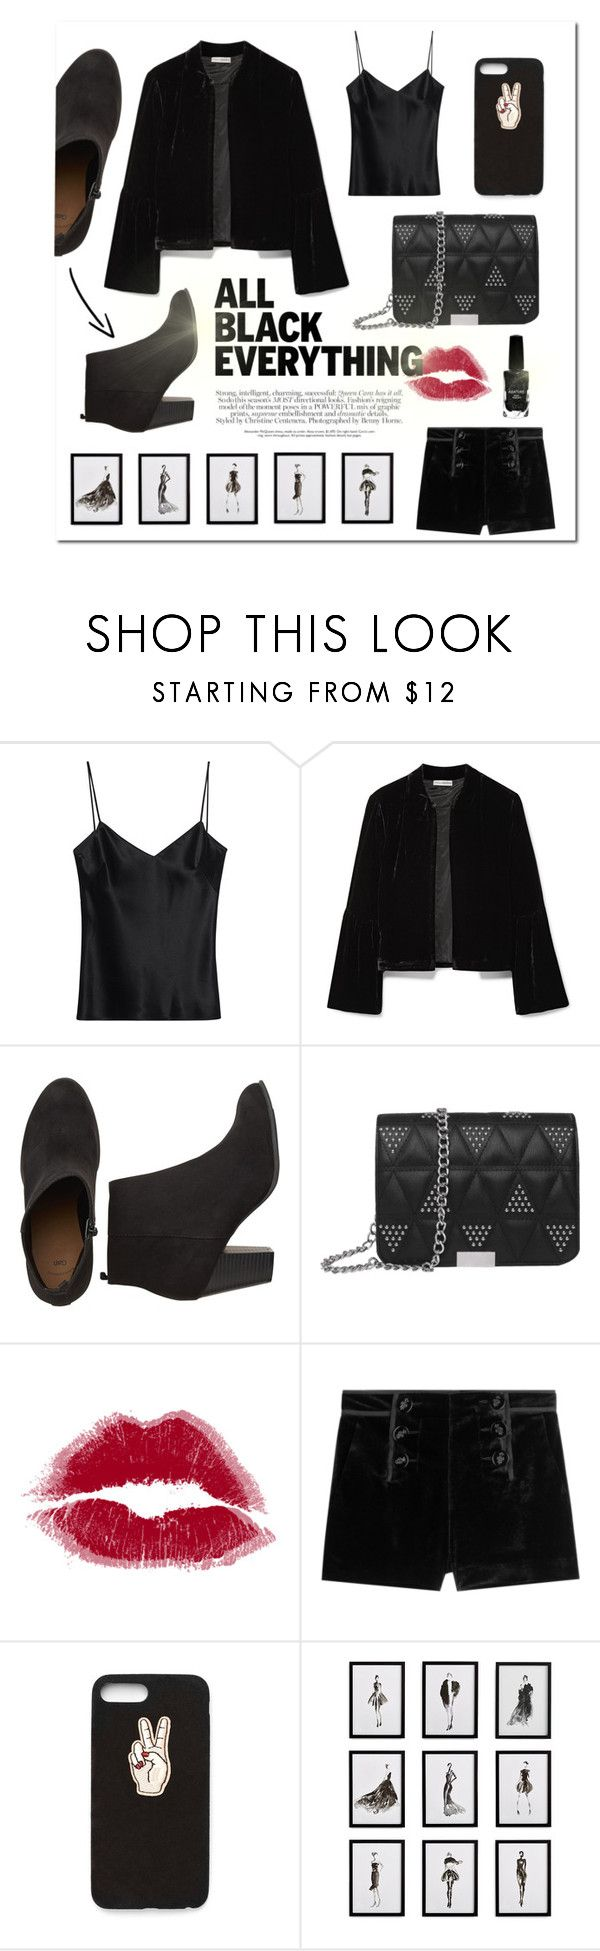 """she wore black velvet"" by adyssasasha ❤ liked on Polyvore featuring Galvan, Ulla Johnson, Emilio Pucci, Nasty Gal, Frontgate, Azature and allblackoutfit"